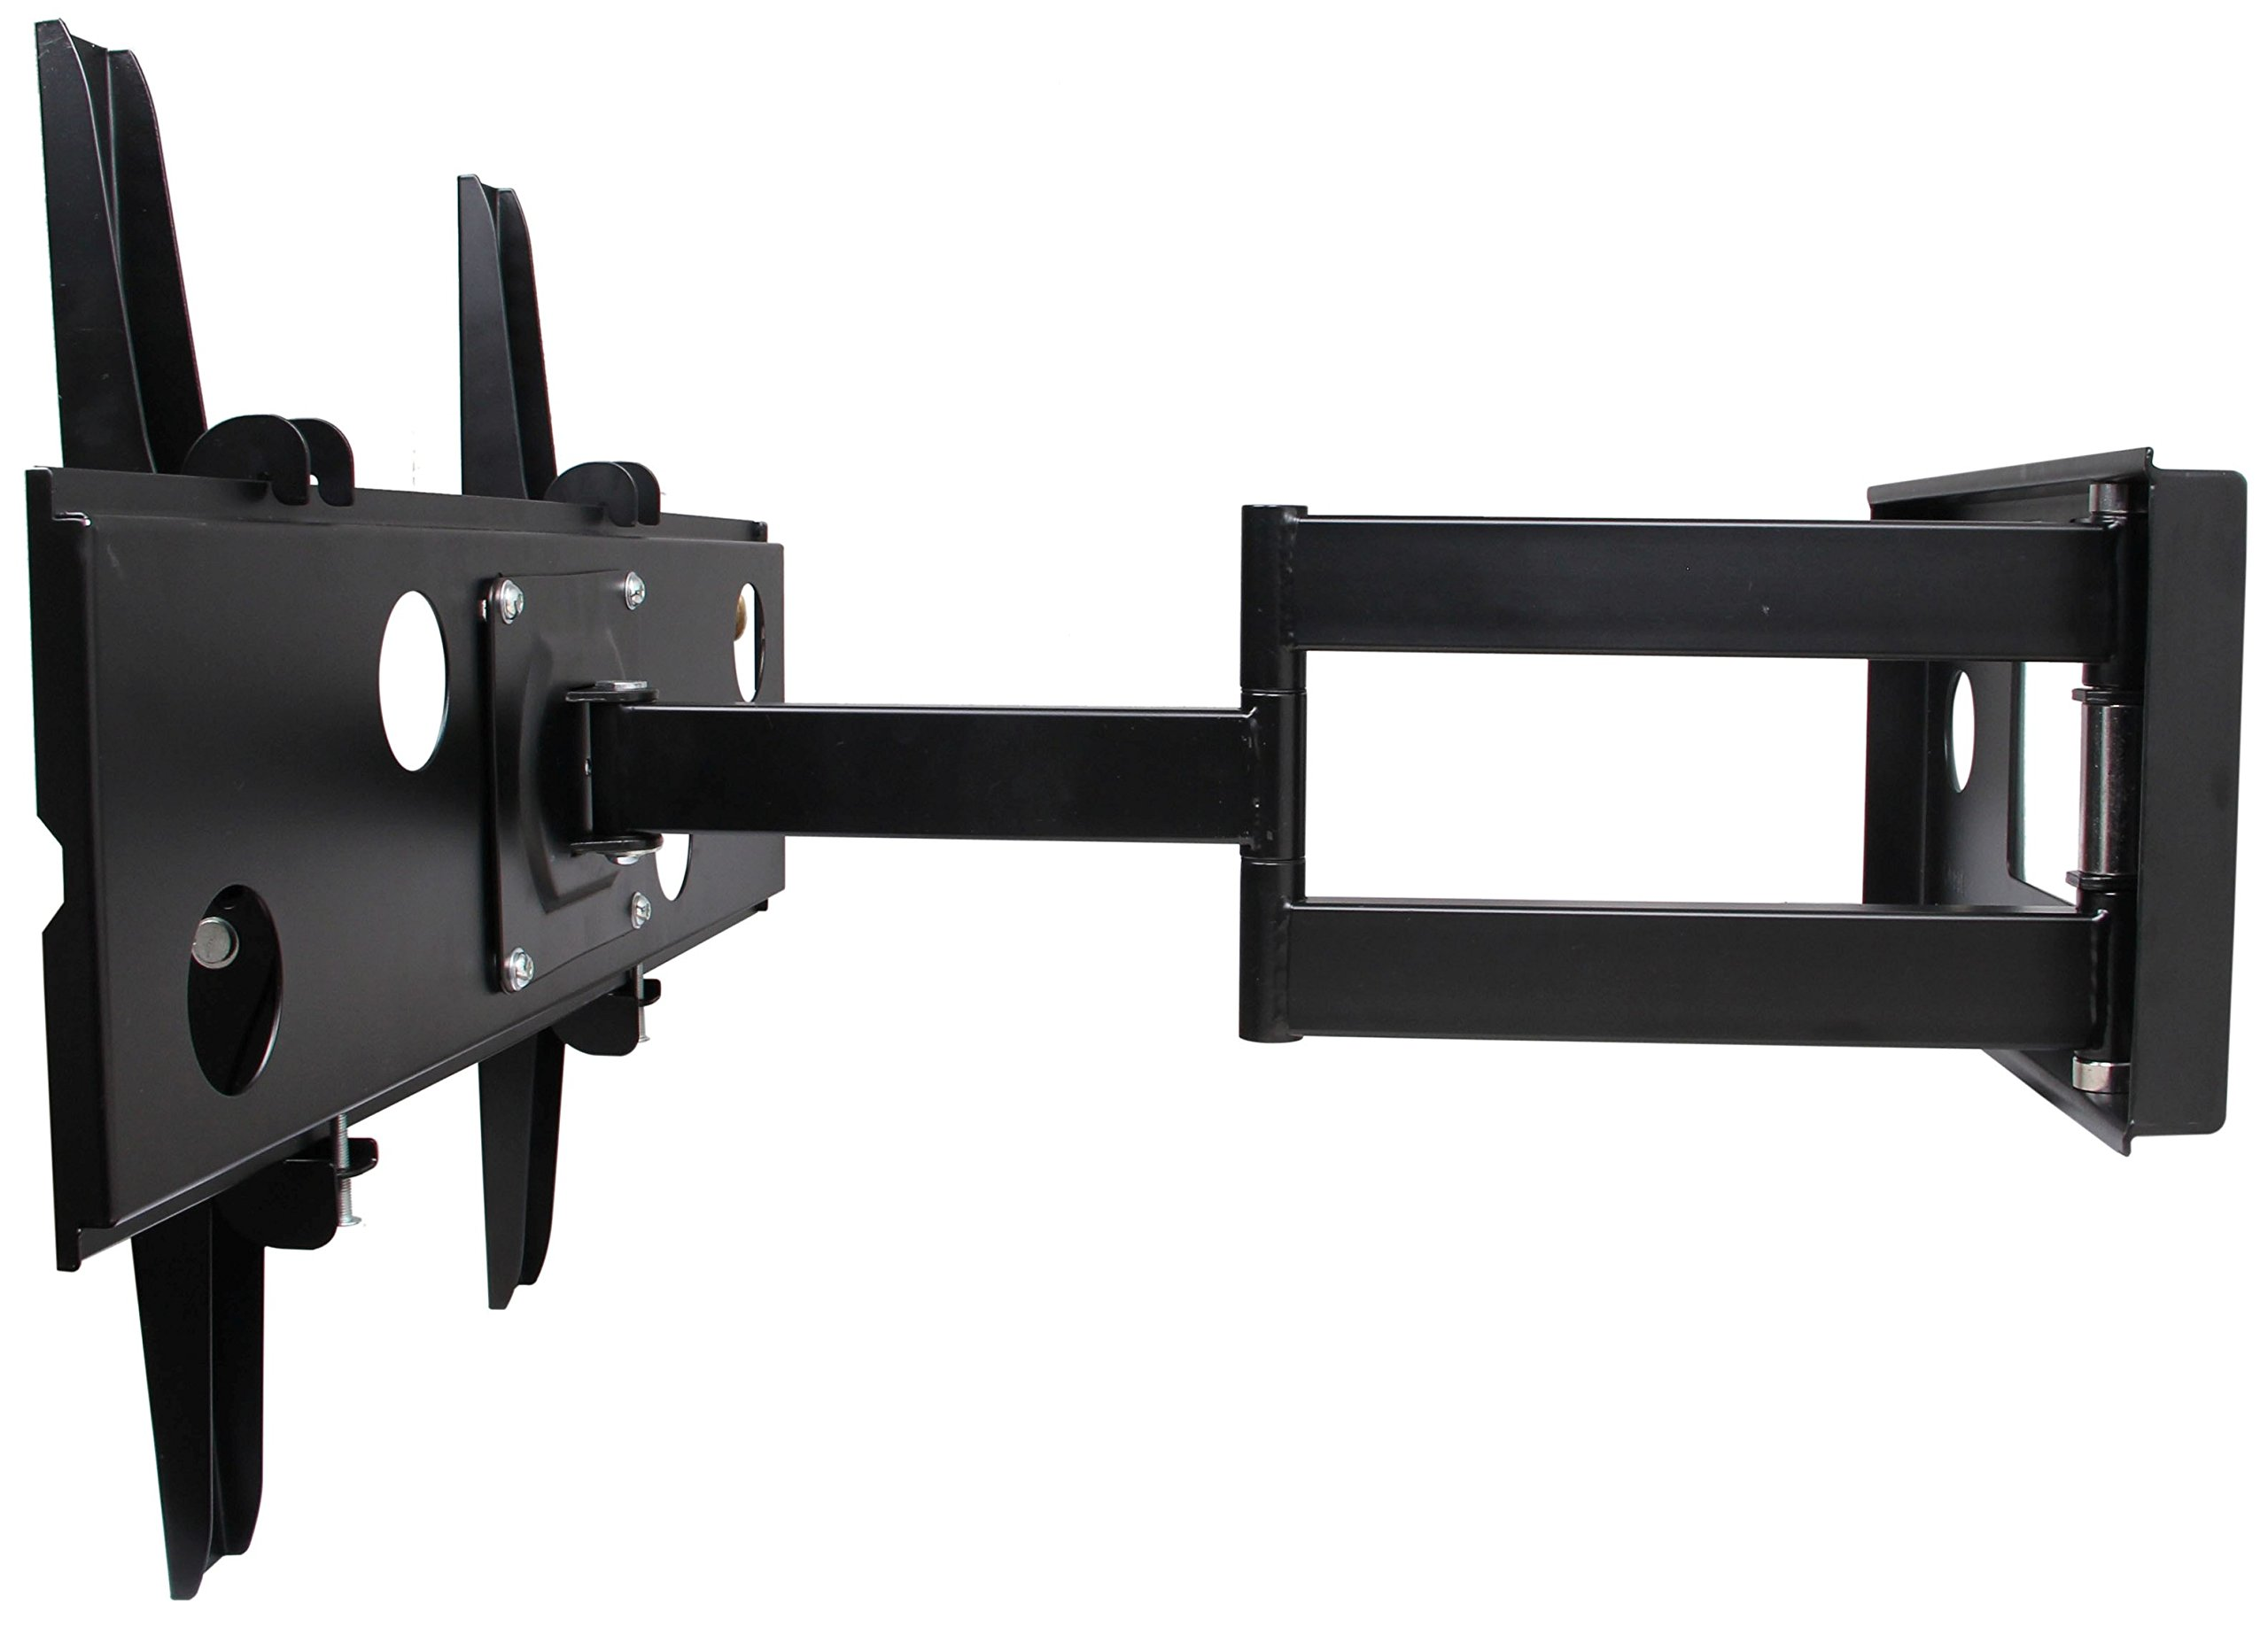 Husky Mounts Full Motion Heavy-Duty Corner Friendly TV Wall Mount Bracket Fits Most 32-60 Inch and Larger LED LCD Flat Screen